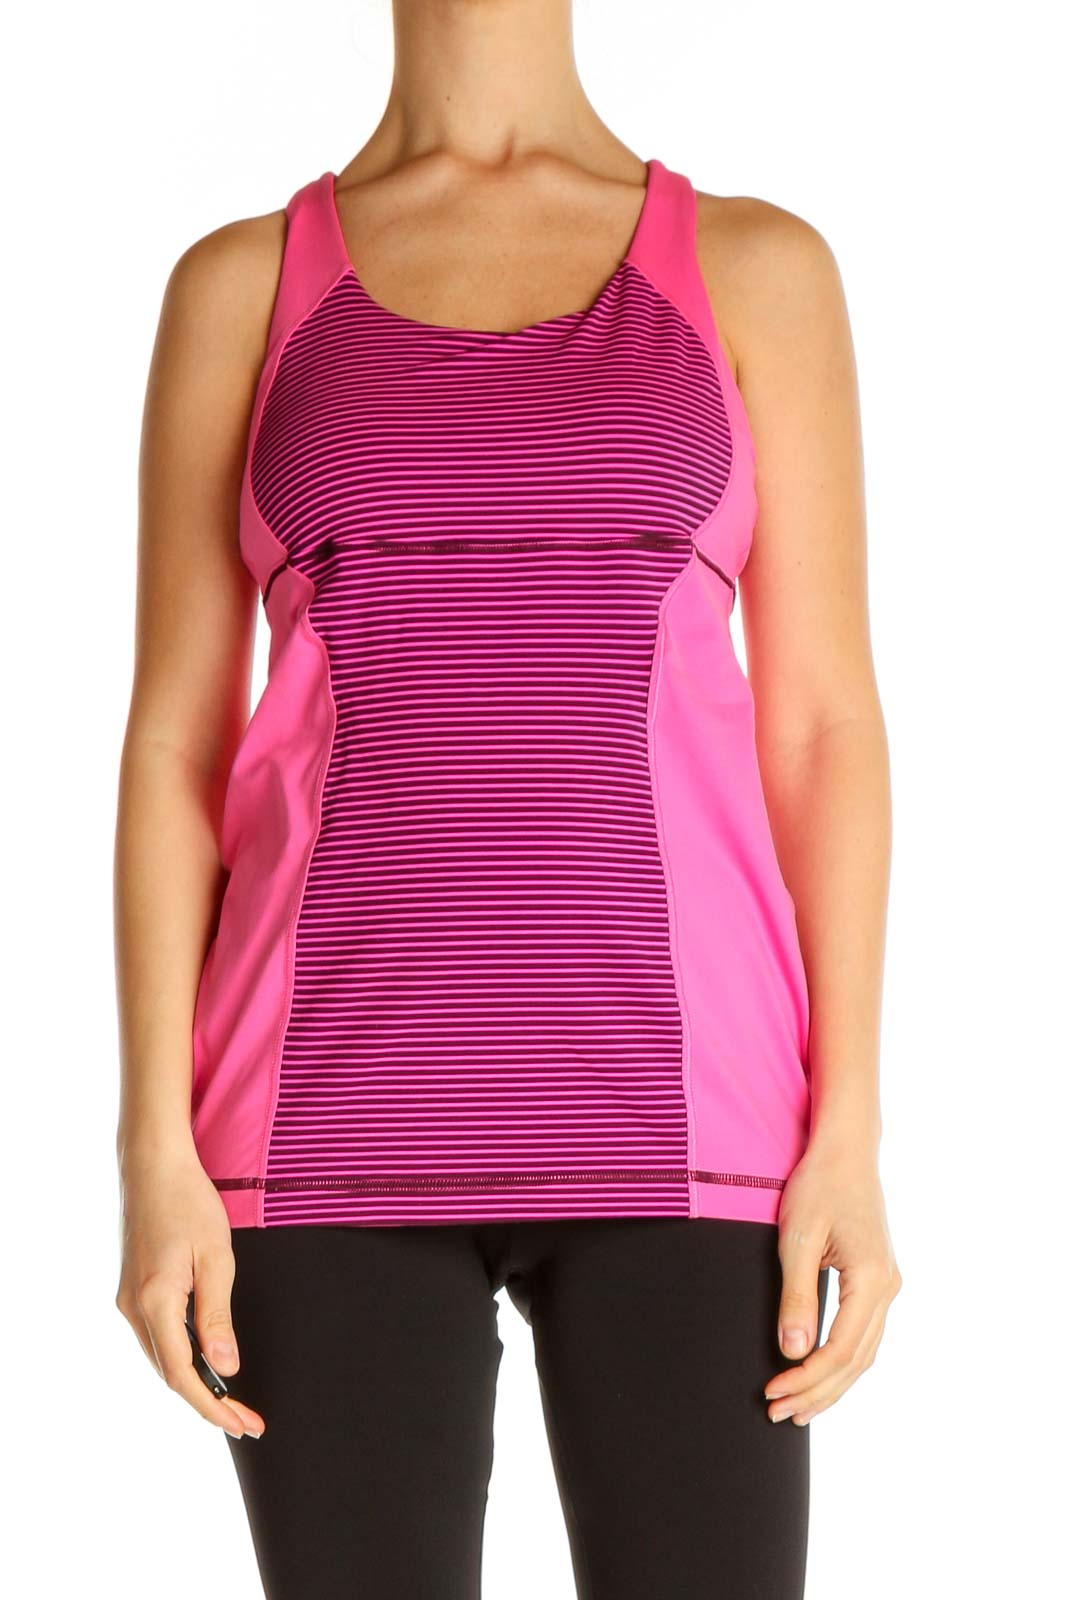 Pink Striped Activewear Tank Top Front